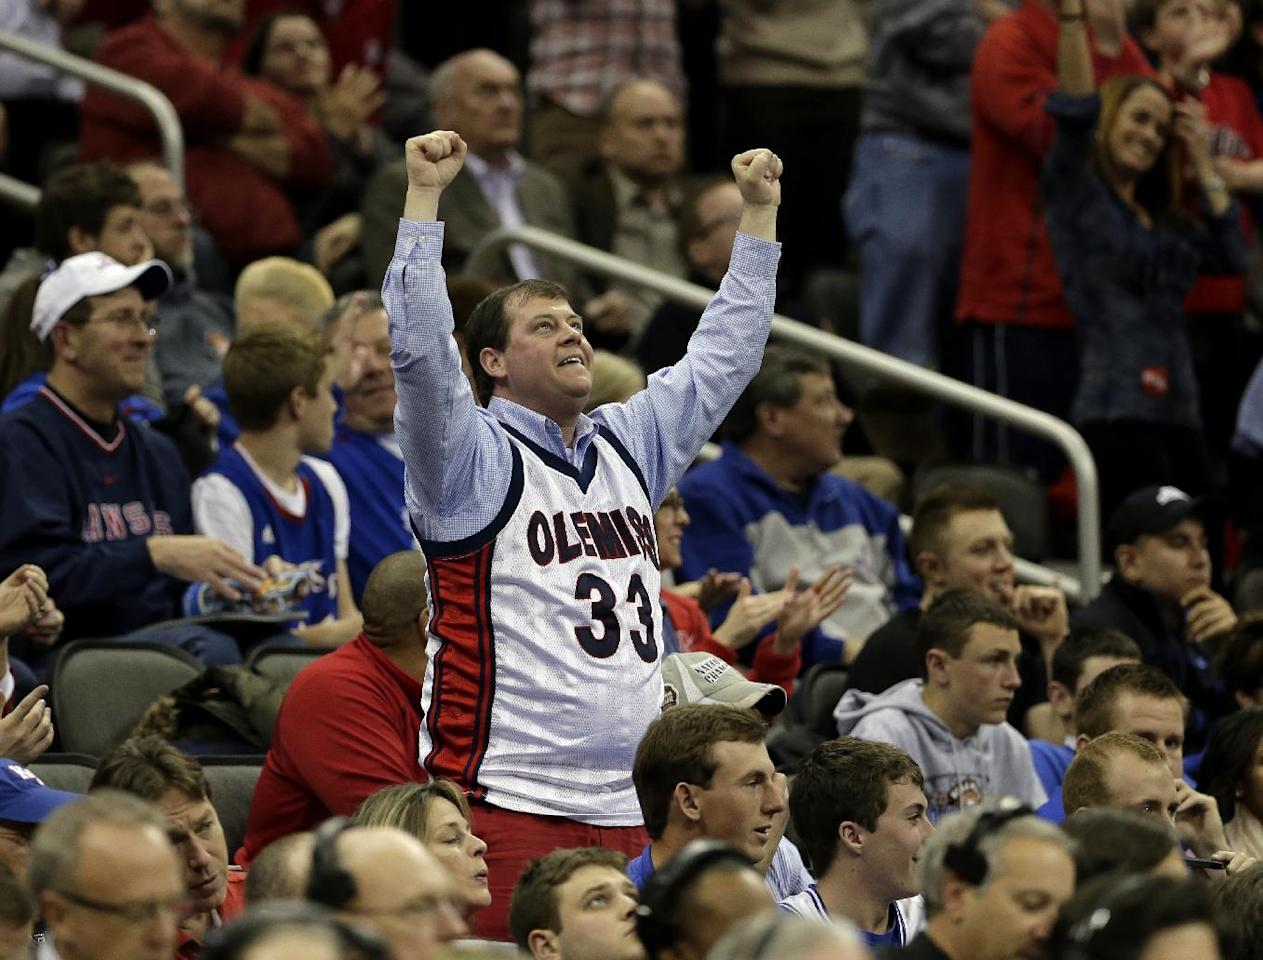 A Mississippi fan cheers during the first half of a third-round game against La Salle in the NCAA college basketball tournament Sunday, March 24, 2013, in Kansas City, Mo. (AP Photo/Charlie Riedel)